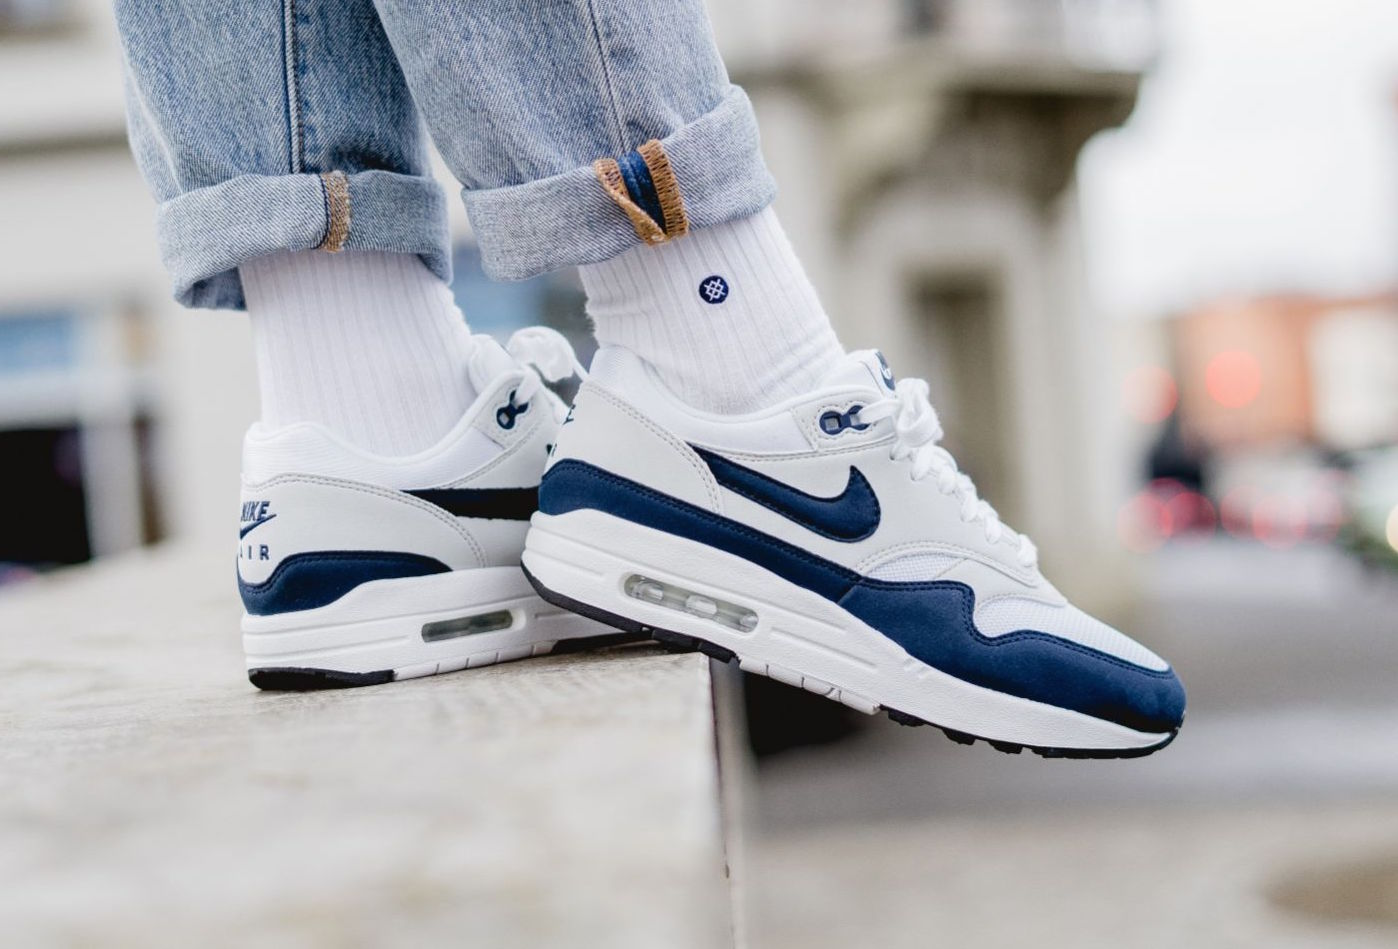 the best attitude e9a26 4bea1 More colorways of the Nike Air Max 1 are a norm every year, but this latest  iteration of the popular runner is a throwback to its classic OG Obsidian  theme ...